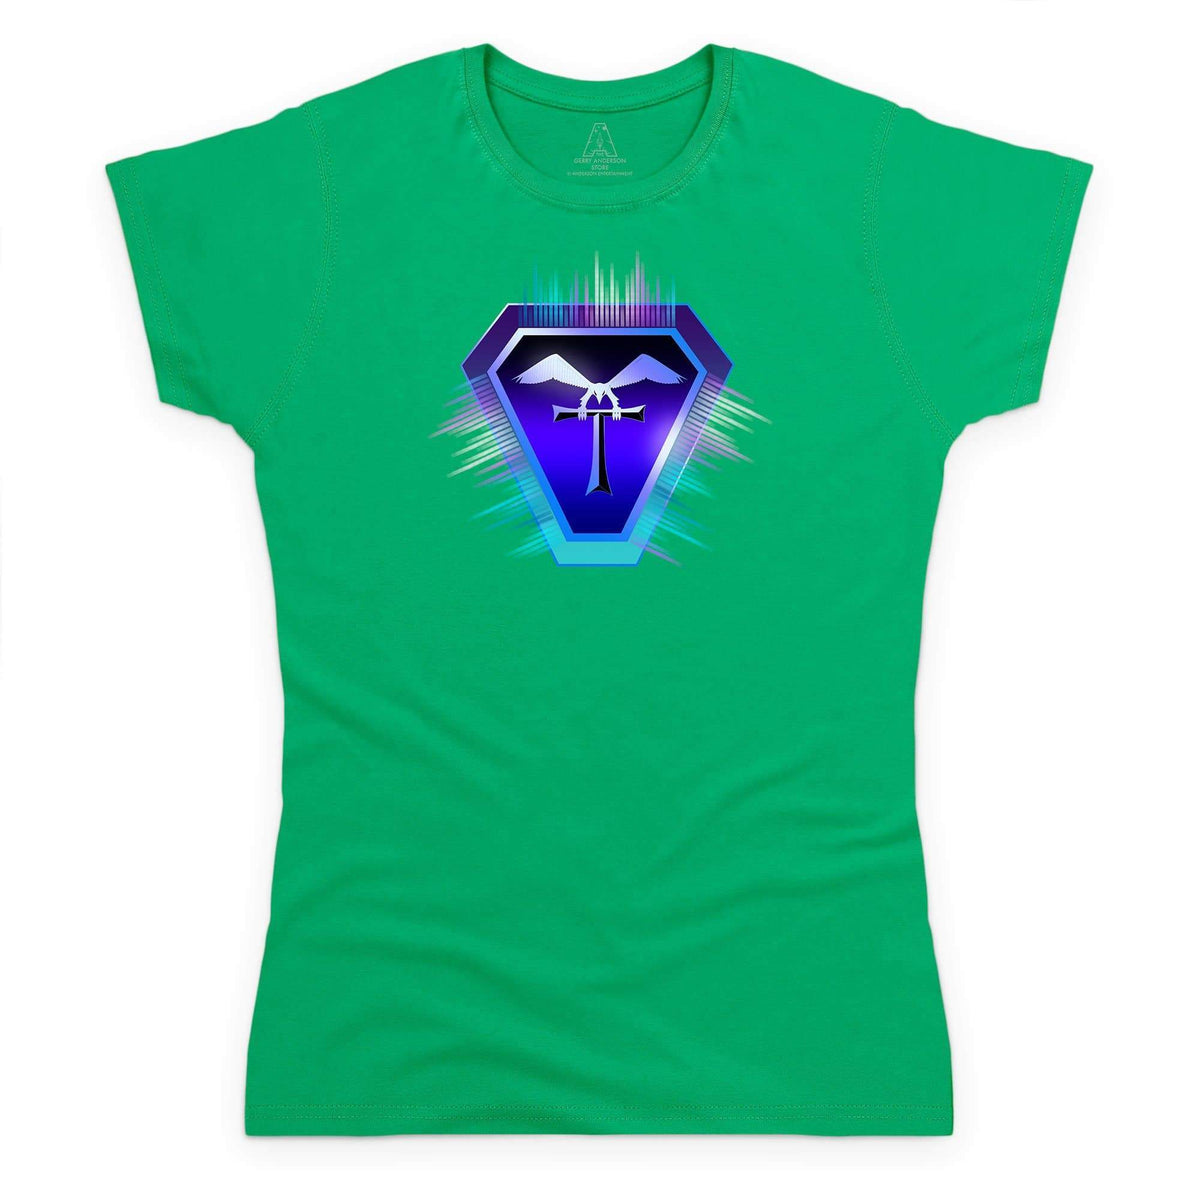 Terrahawks Neon Logo Women's T-Shirt [Official & Exclusive] - The Gerry Anderson Store